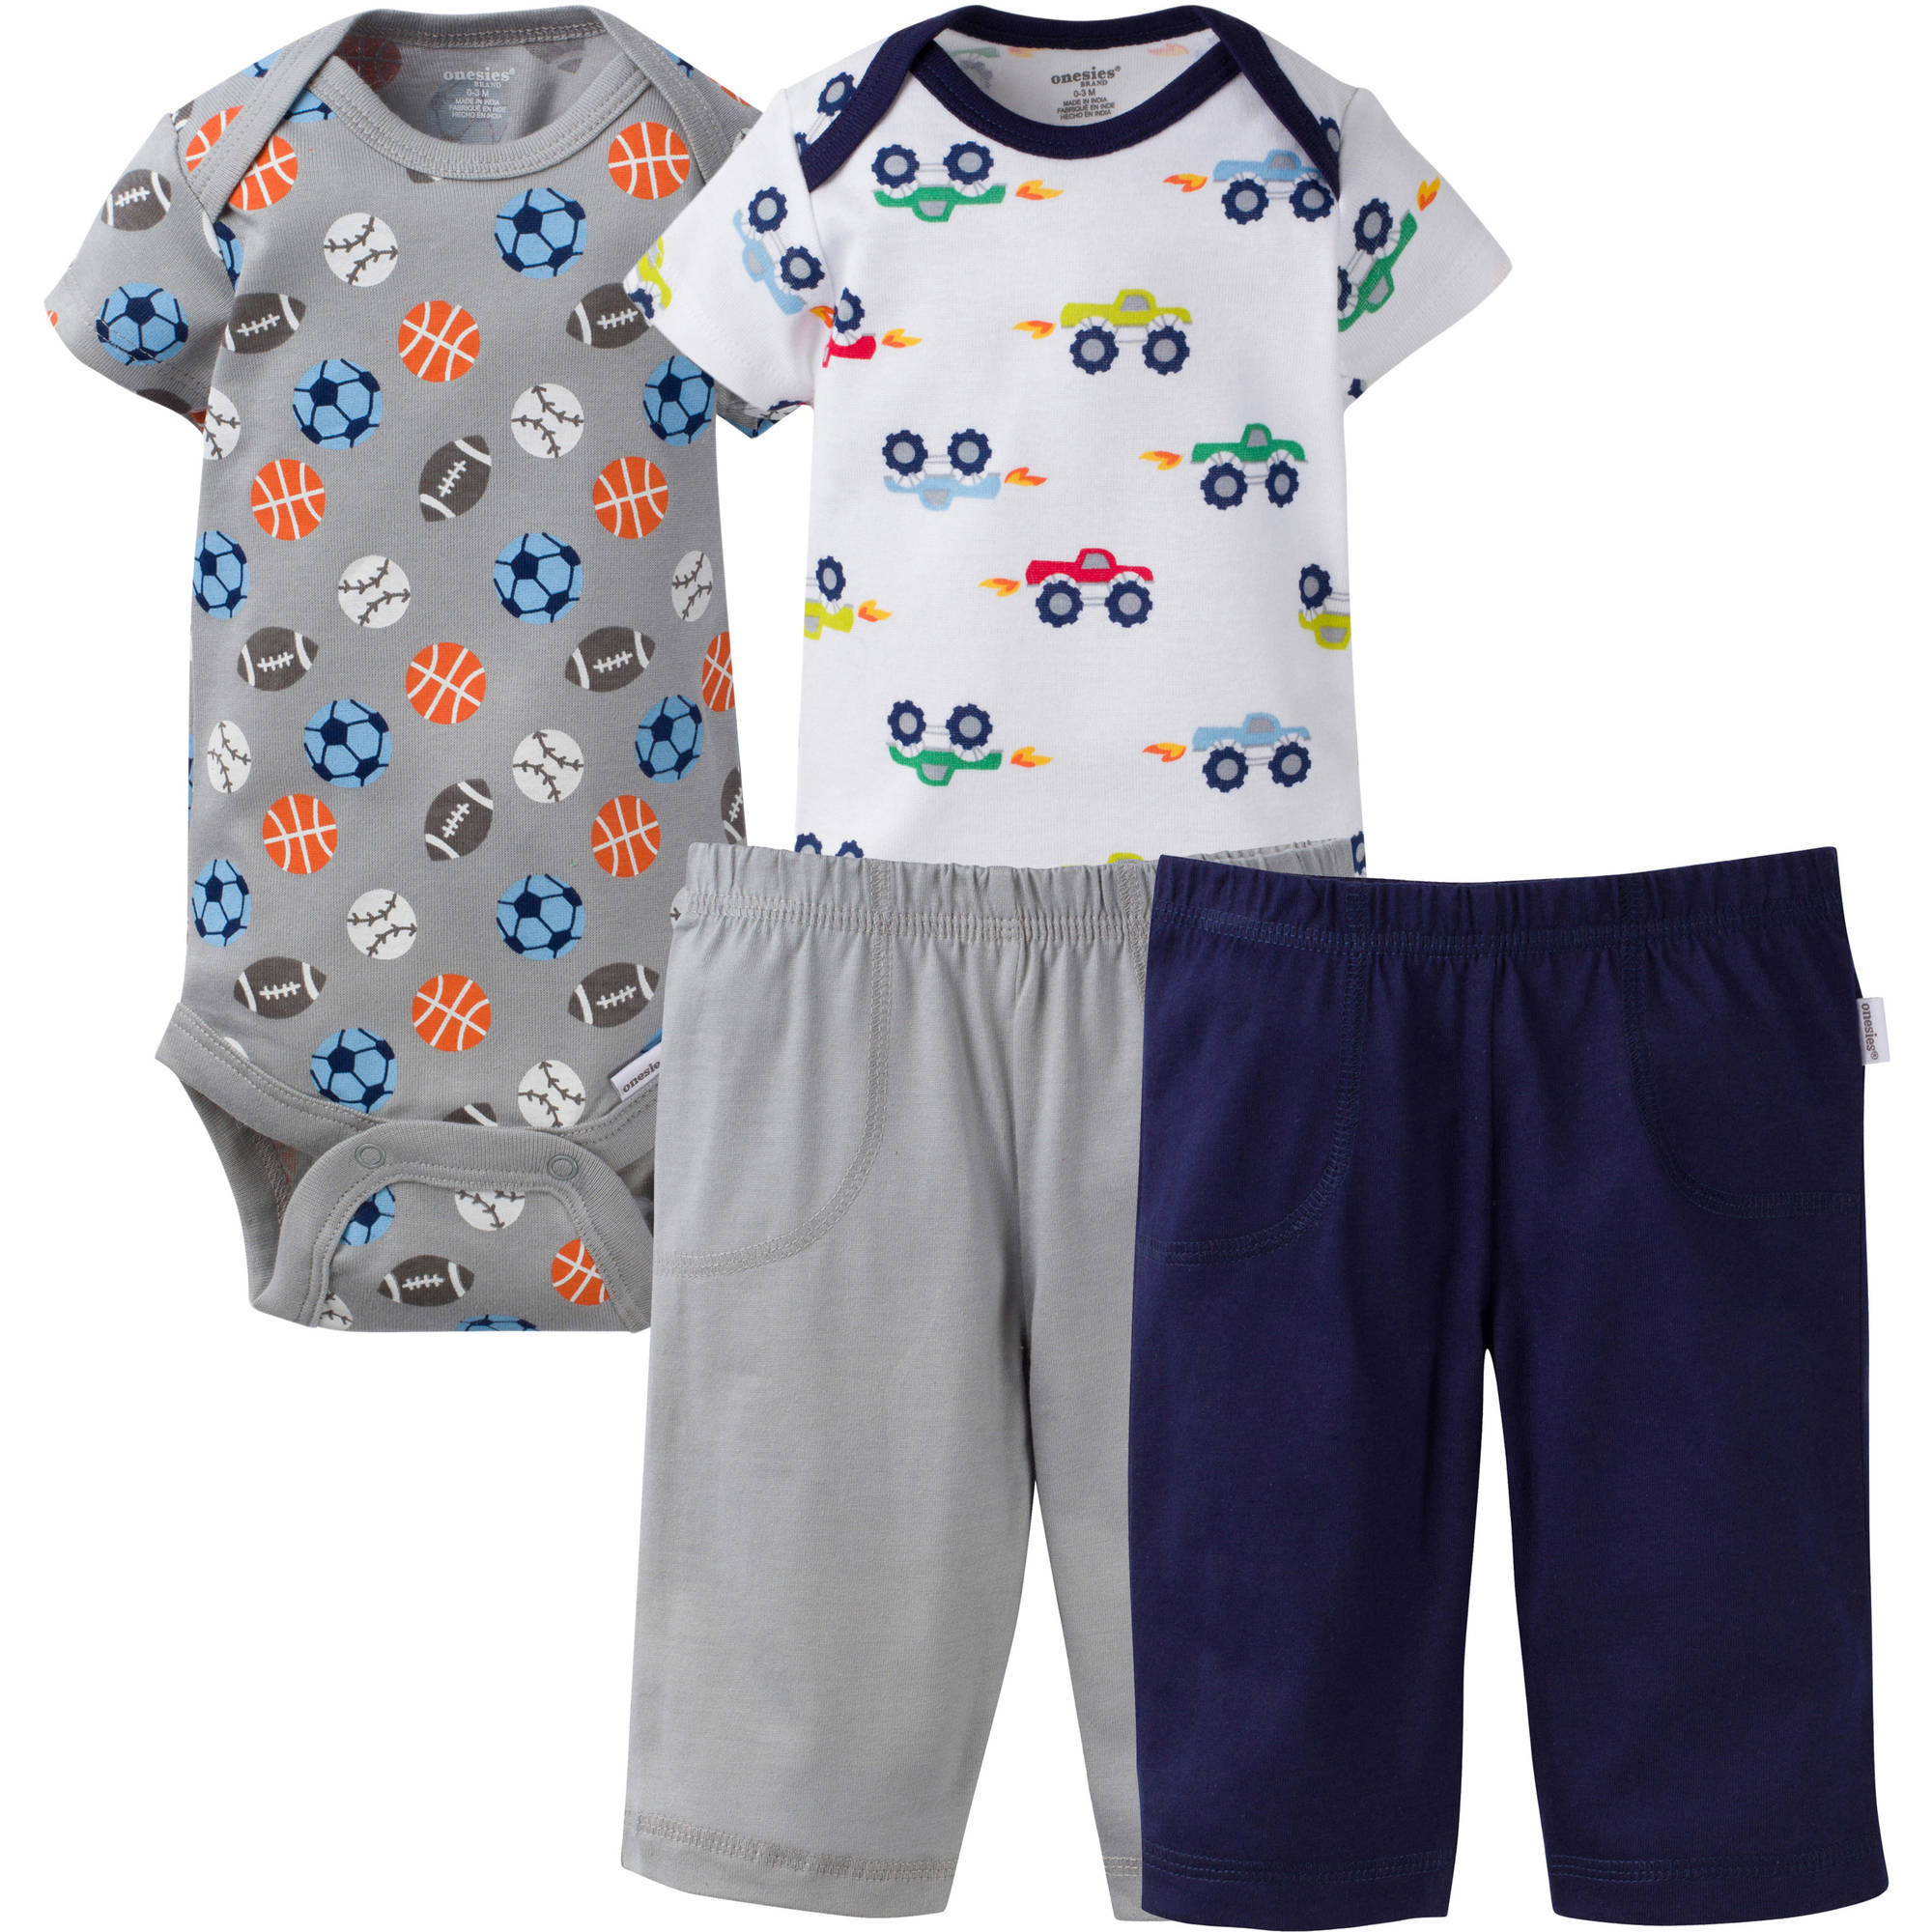 Onesies Brand Newborn Baby Boy Mix N'Match Bodysuits & Pants 4 Pc 100% Cotton Layette Set